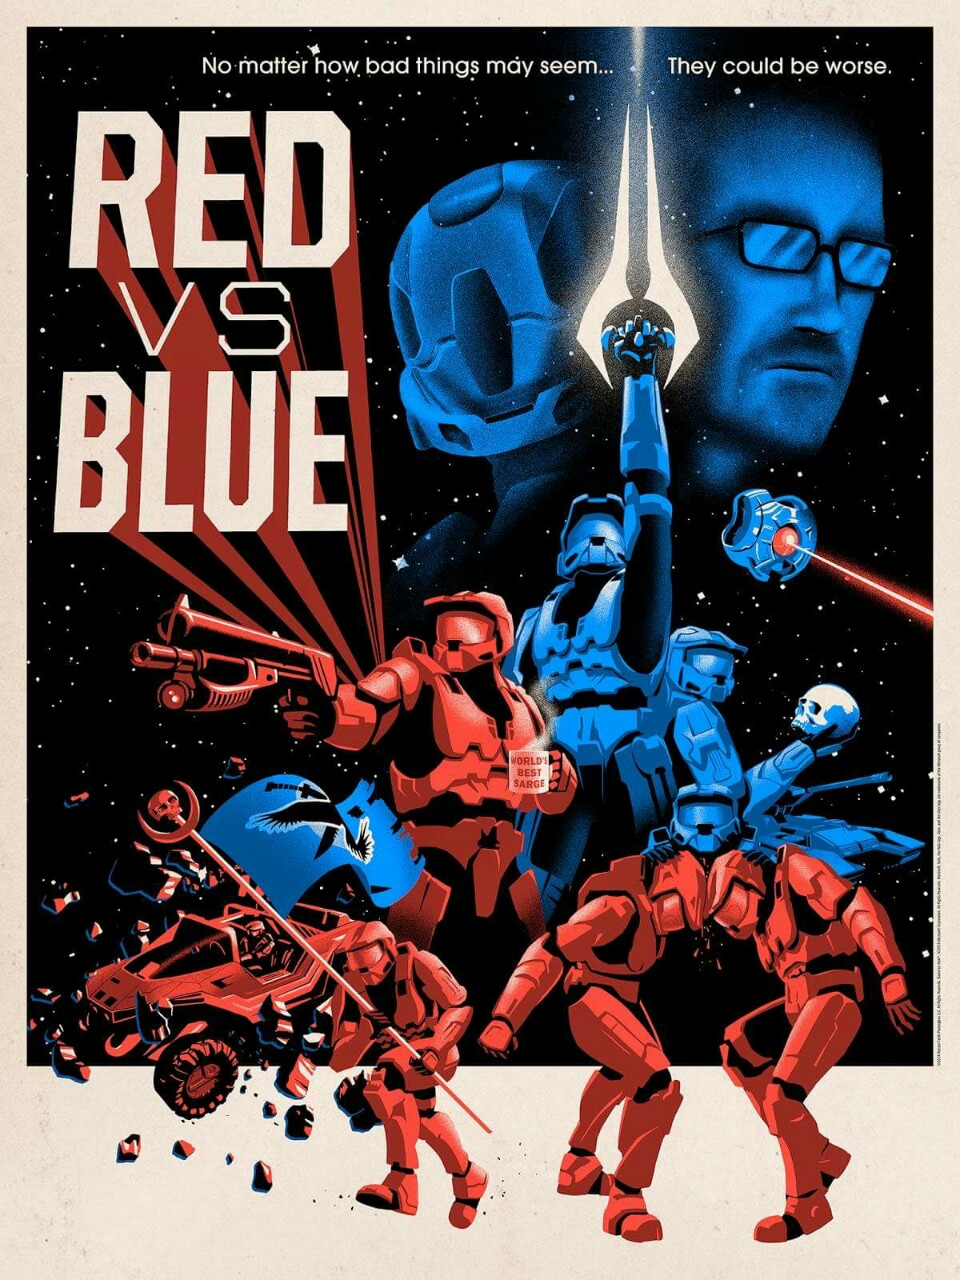 038 red vs blue poster red vs blue know your meme